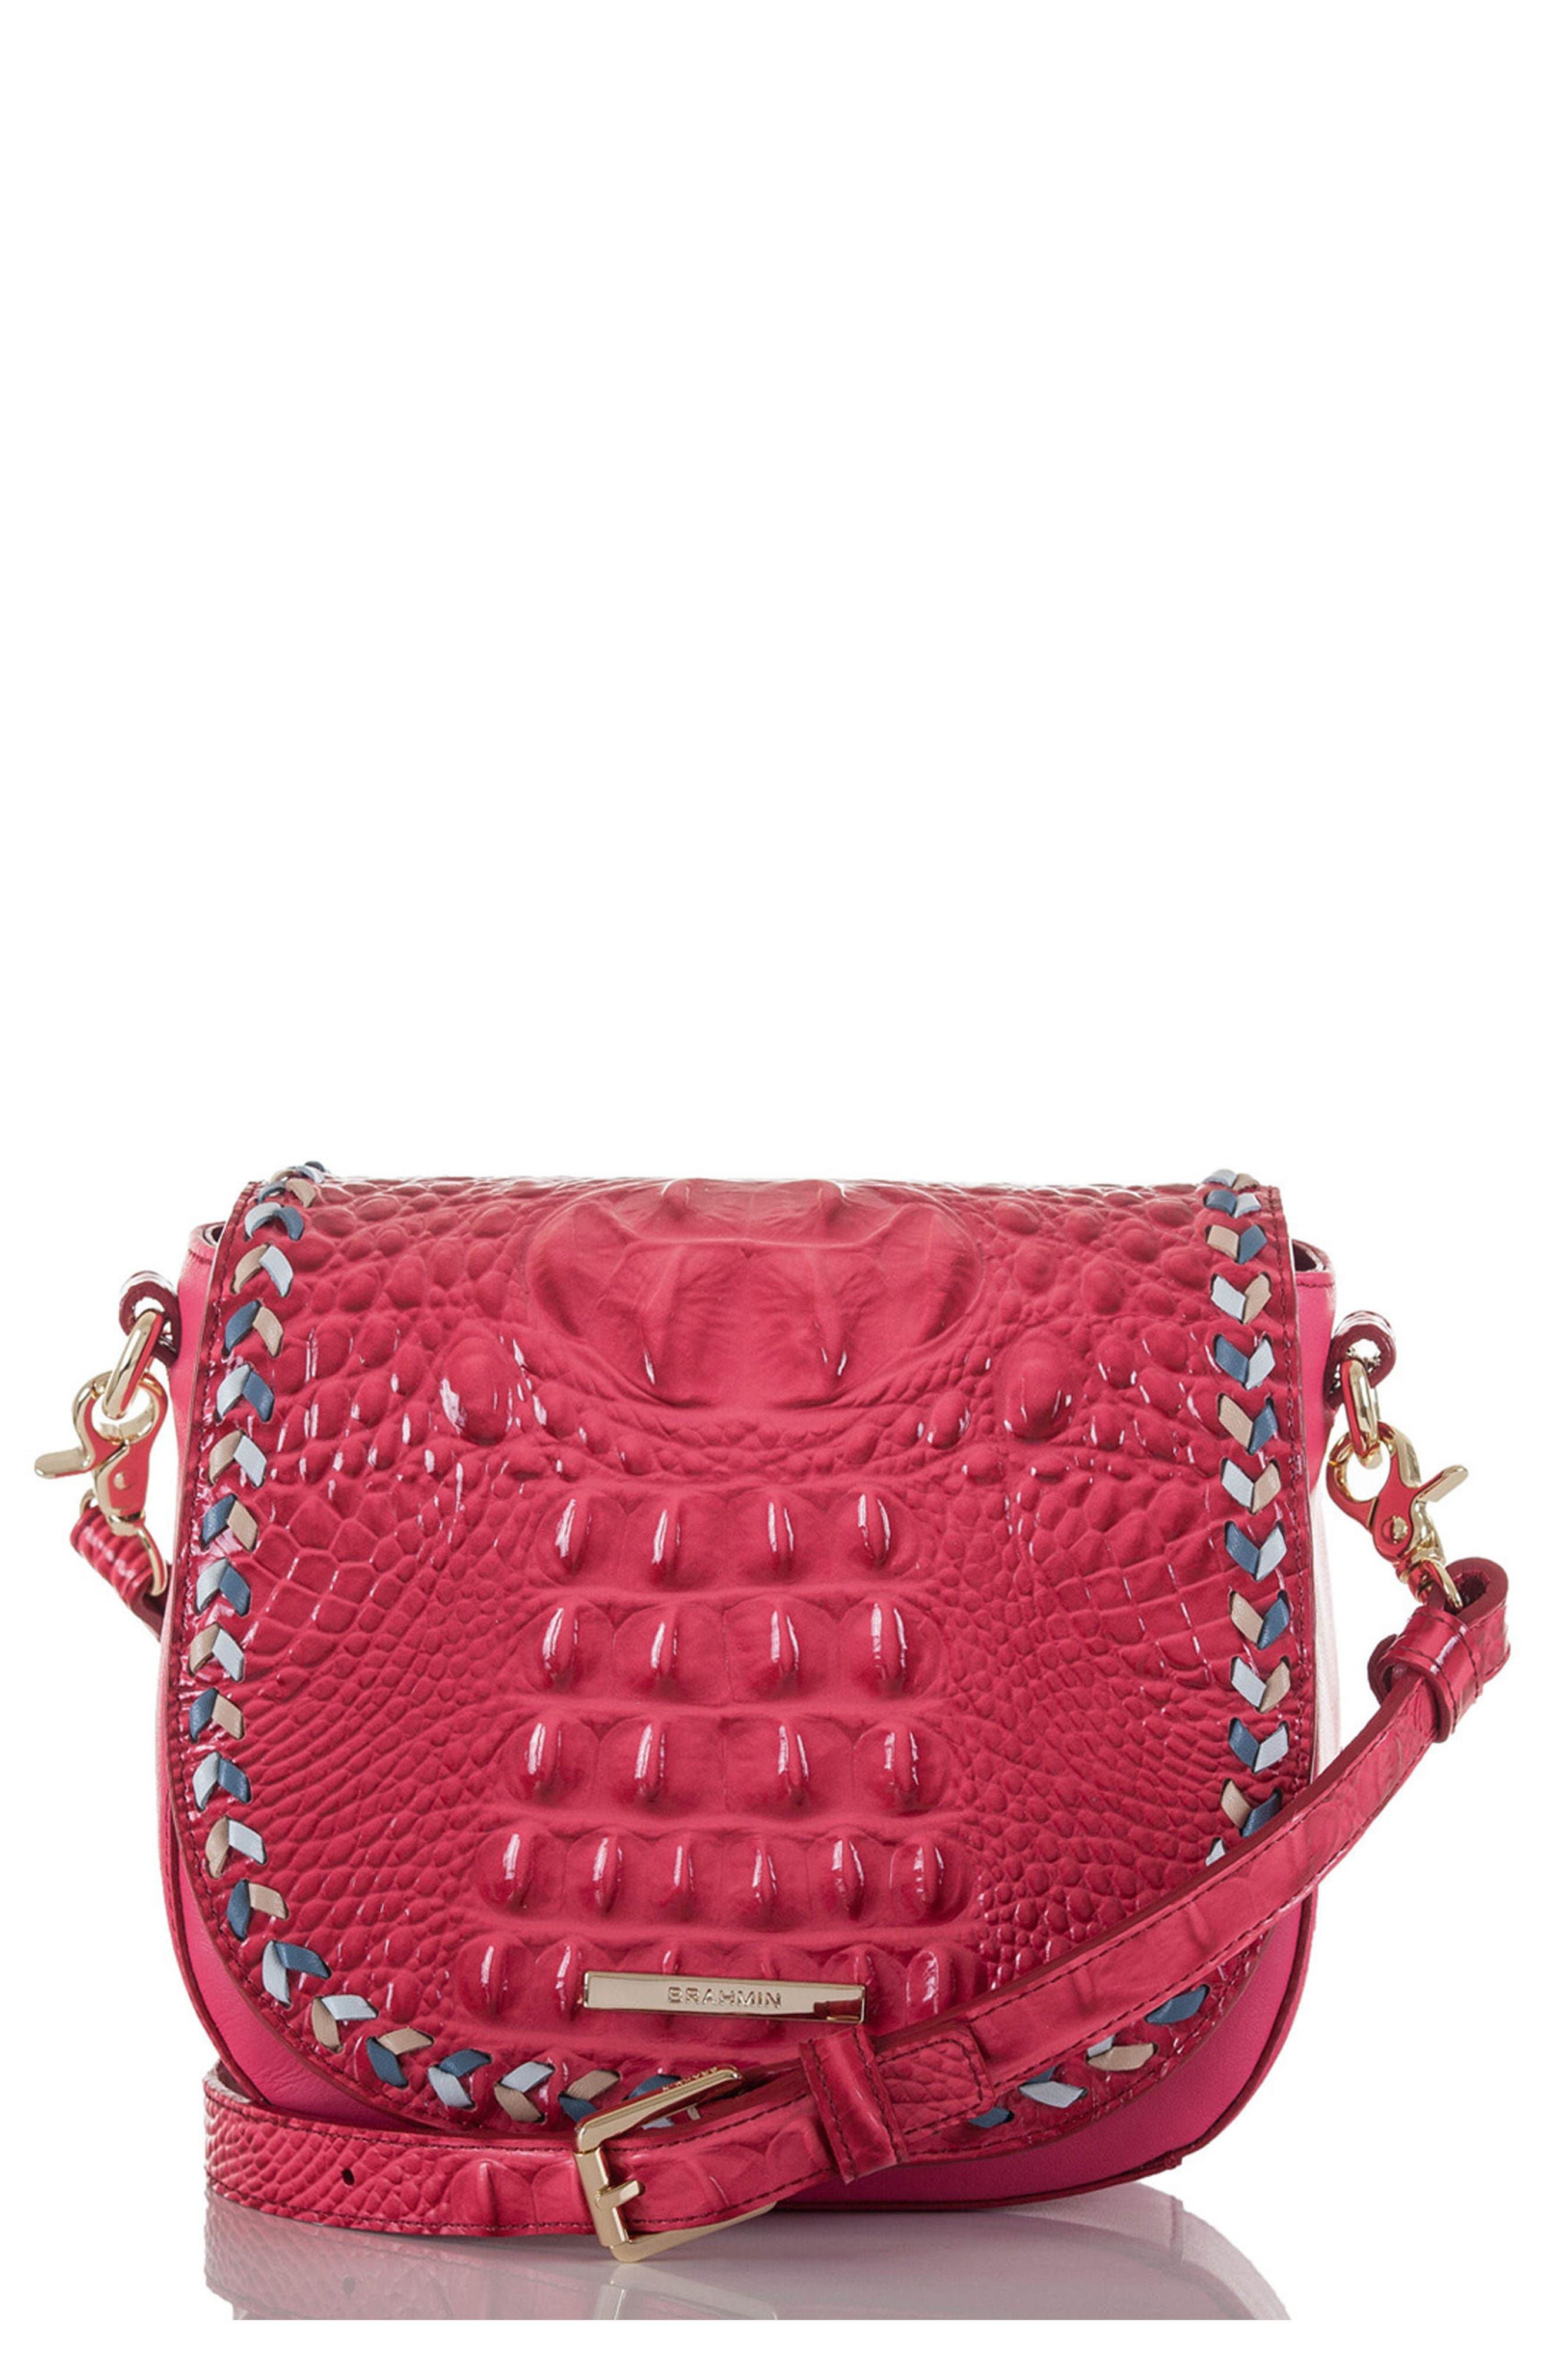 Mini Sonny Whipstitched Leather Crossbody Bag,                         Main,                         color, Ribbon